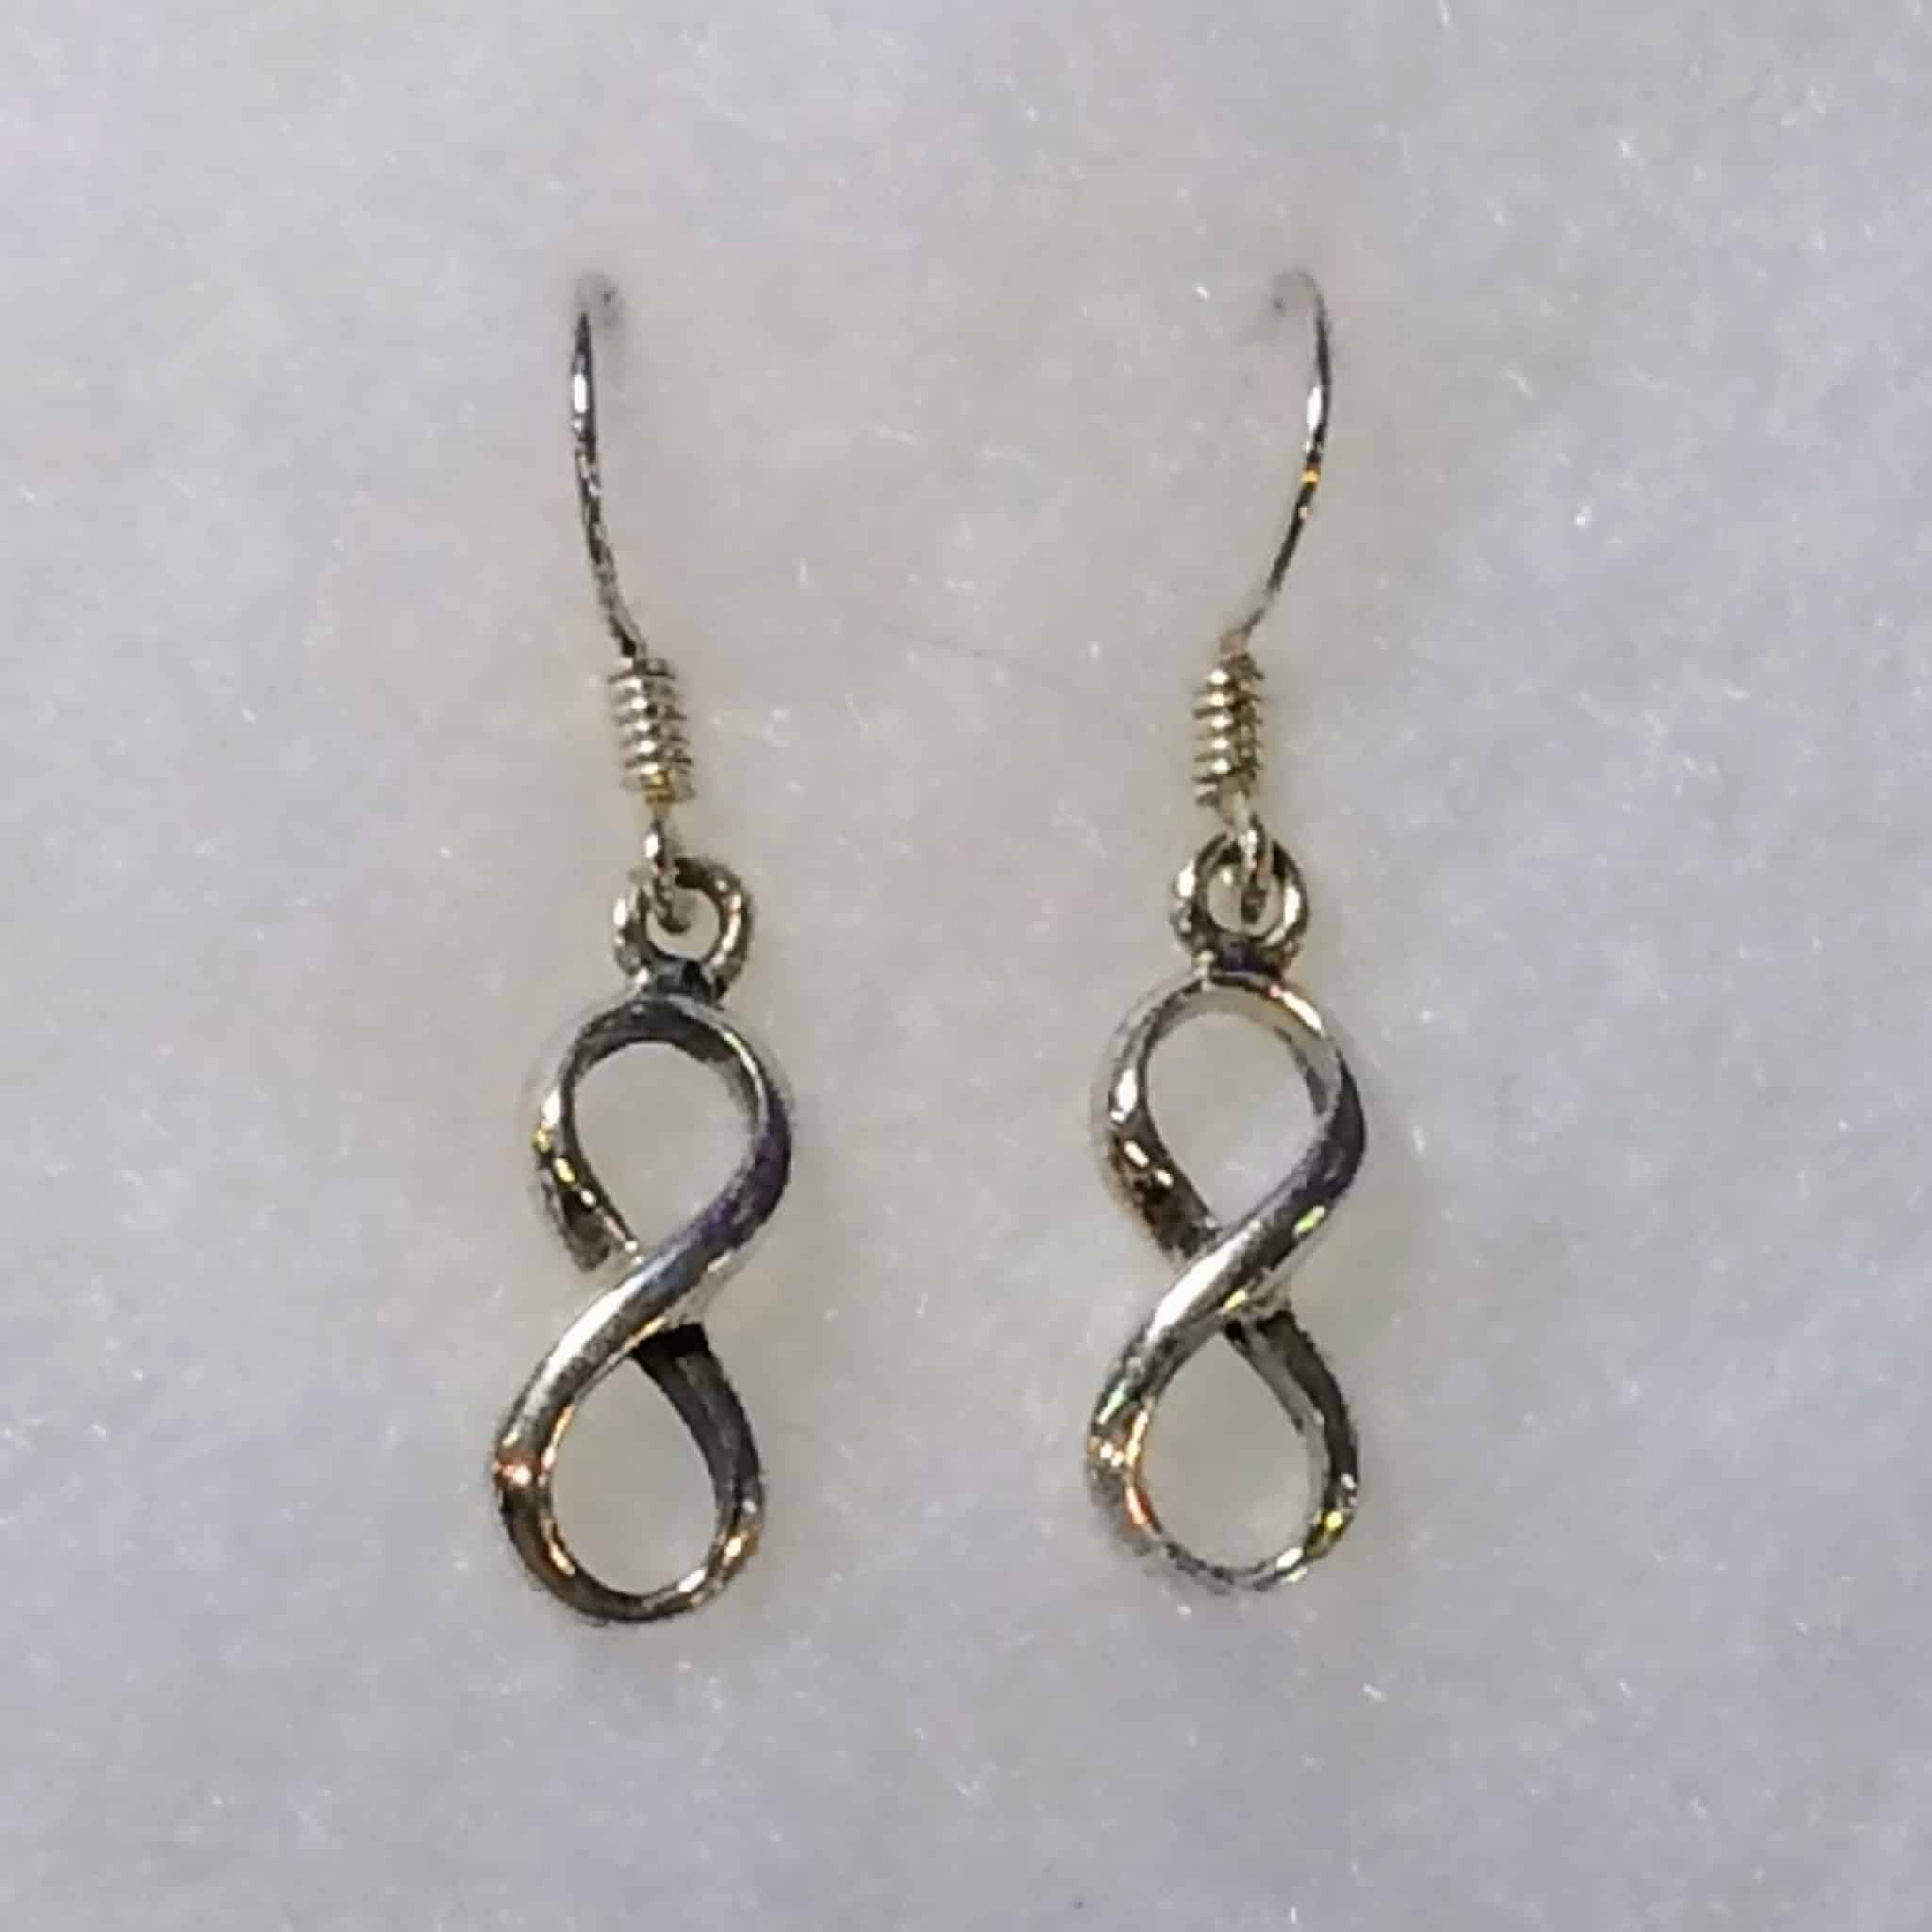 behind meaning hoop slide plain with at hook feature the sleek loop sterling delicate infinity end an products aeravida silver pe a thread dangle earrings details style